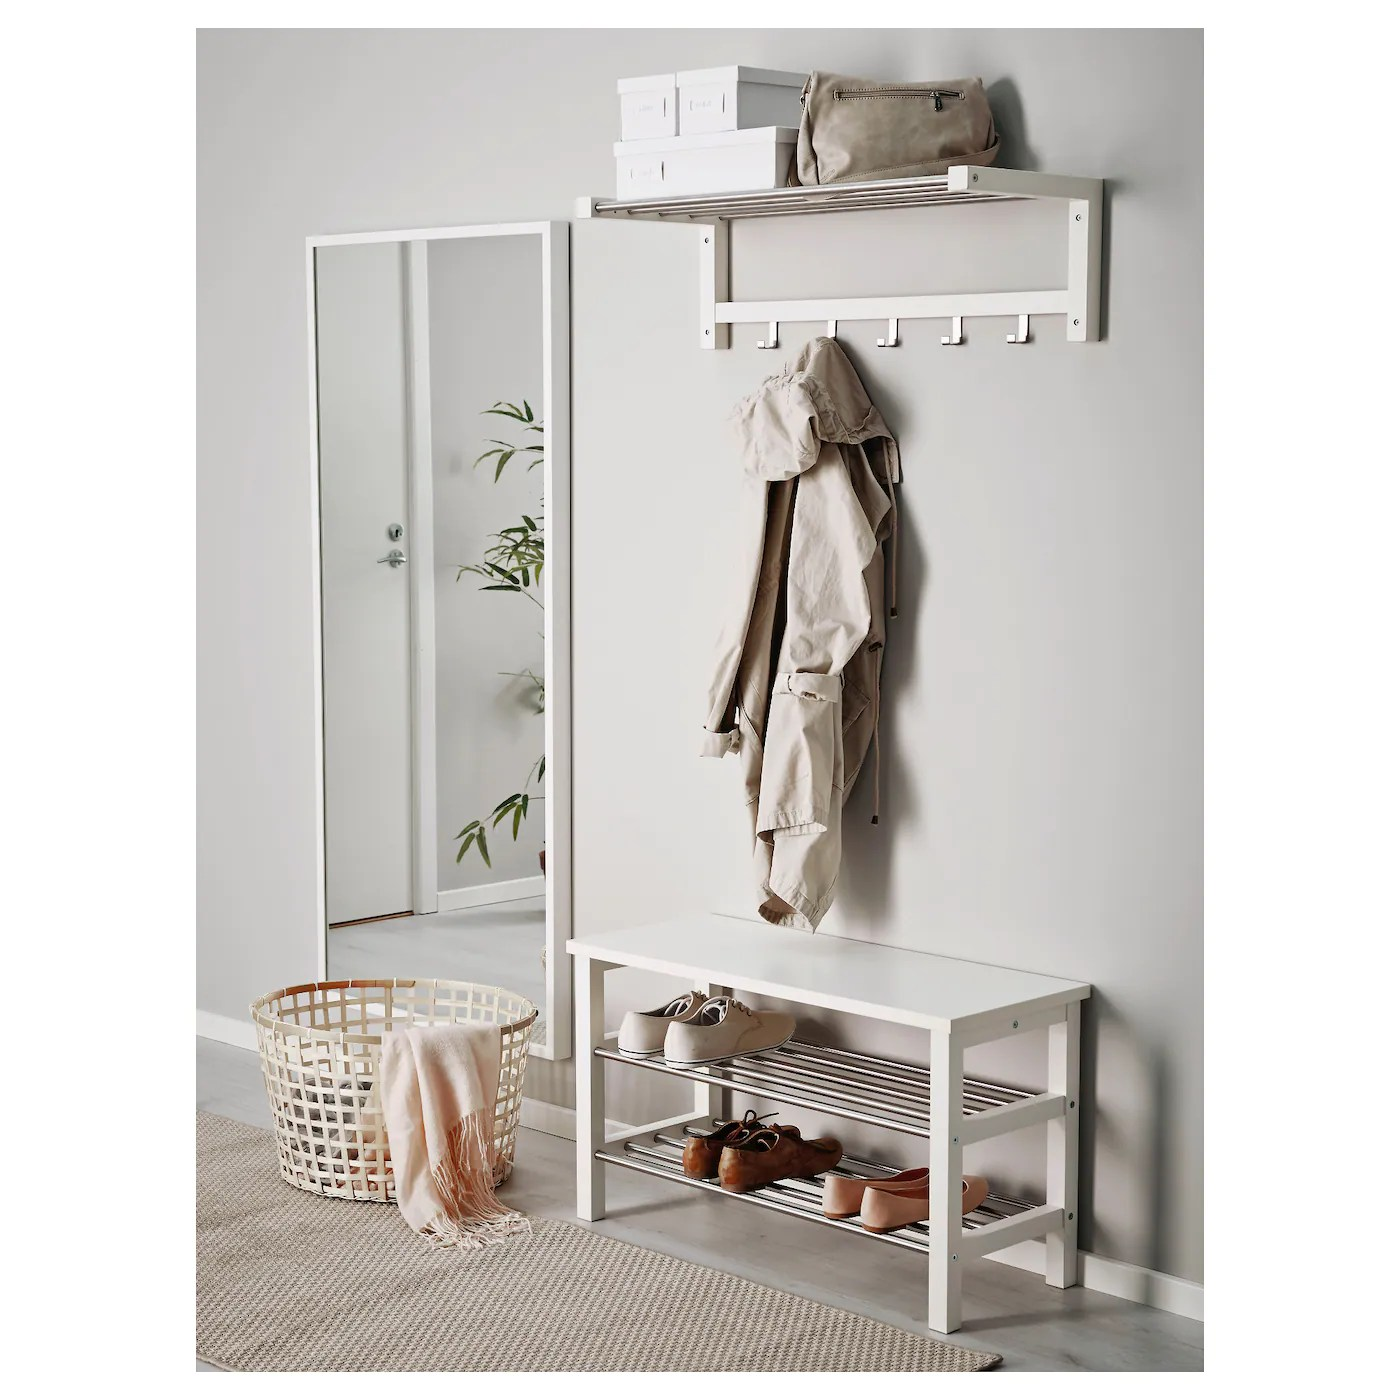 Flurgarderobe Ikea Tjusig Bench With Shoe Storage White 81 X 50 Cm Ikea